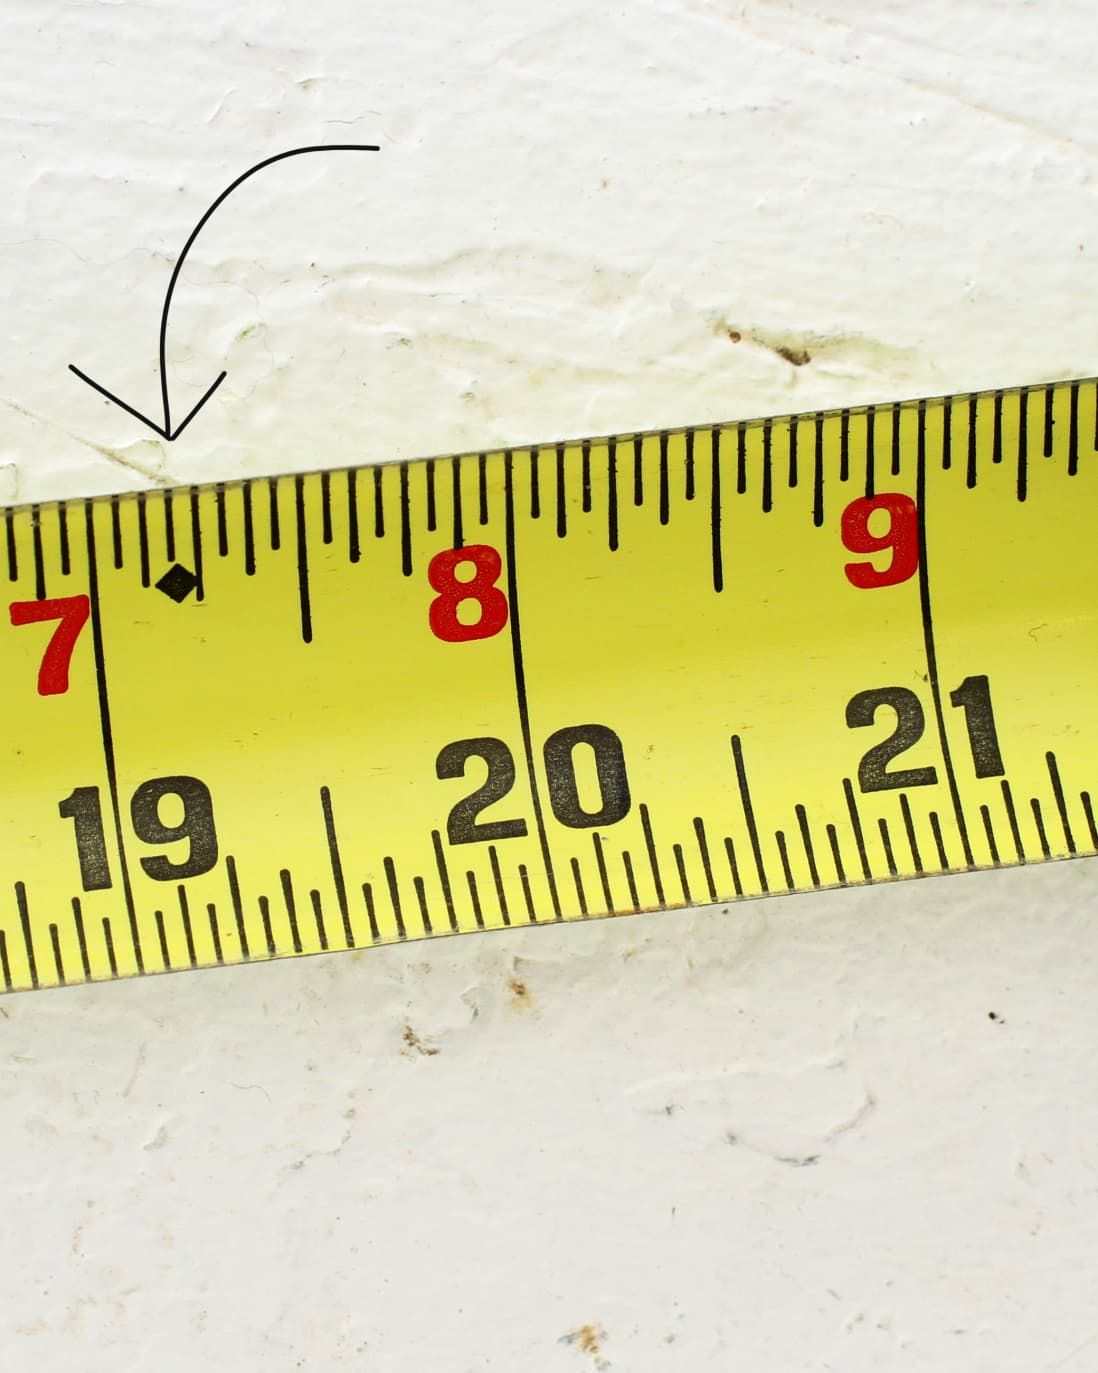 How To Use A Tape Measure The Right Way